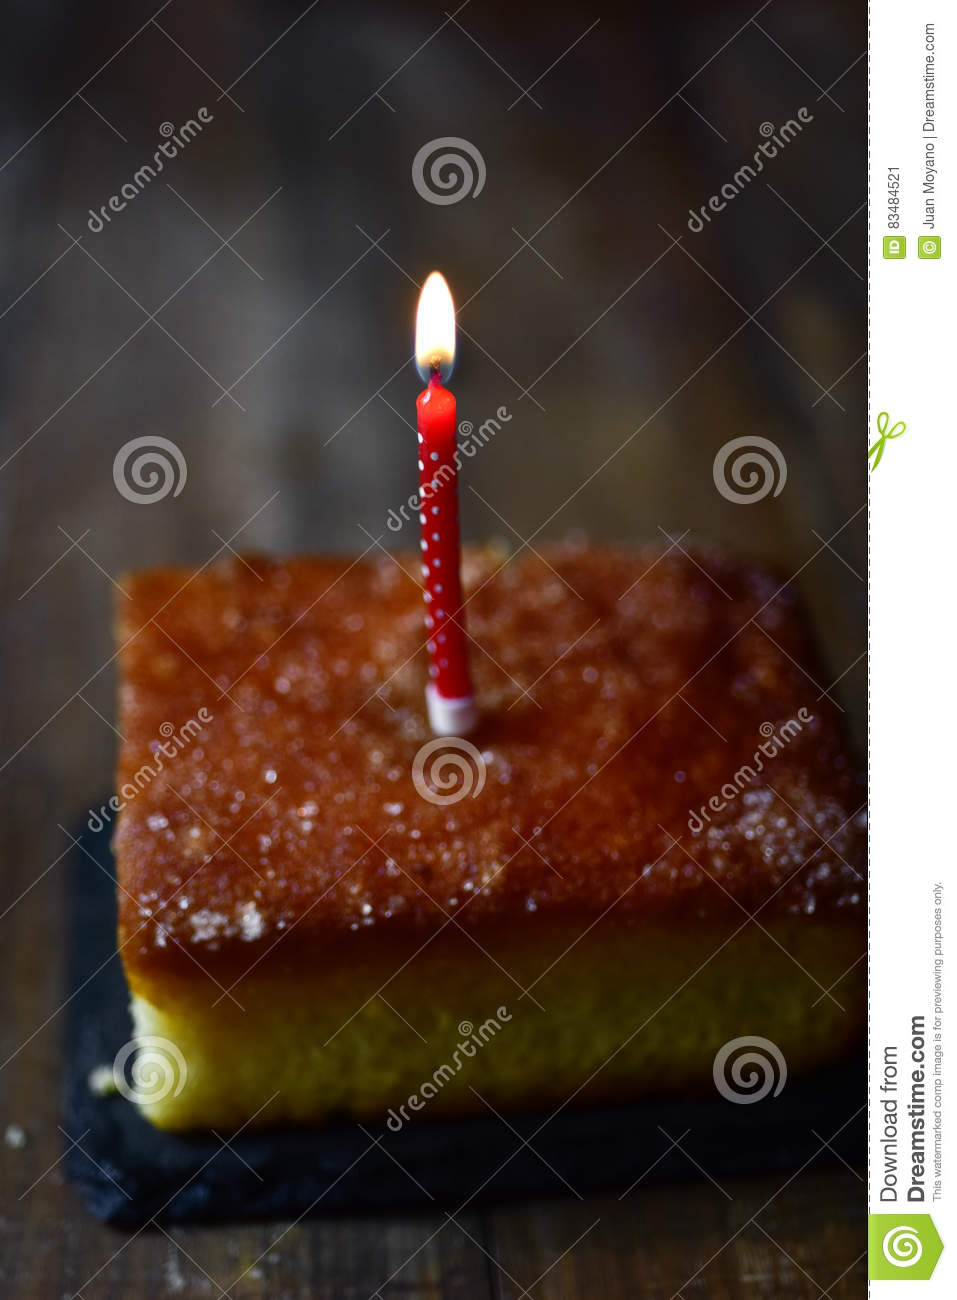 Lit birthday candle on a cake